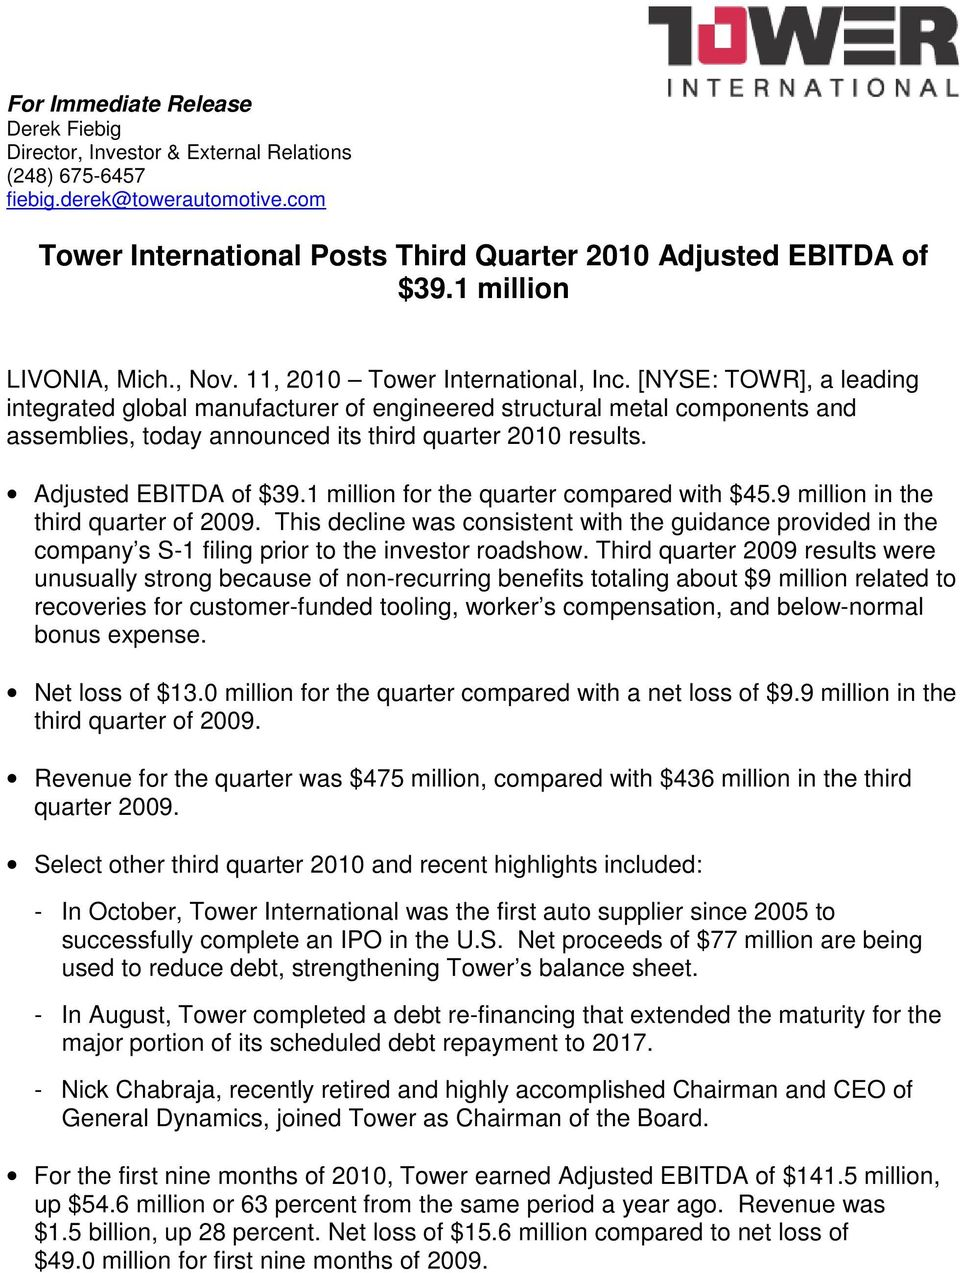 [NYSE: TOWR], a leading integrated global manufacturer of engineered structural metal components and assemblies, today announced its third quarter 2010 results. of $39.